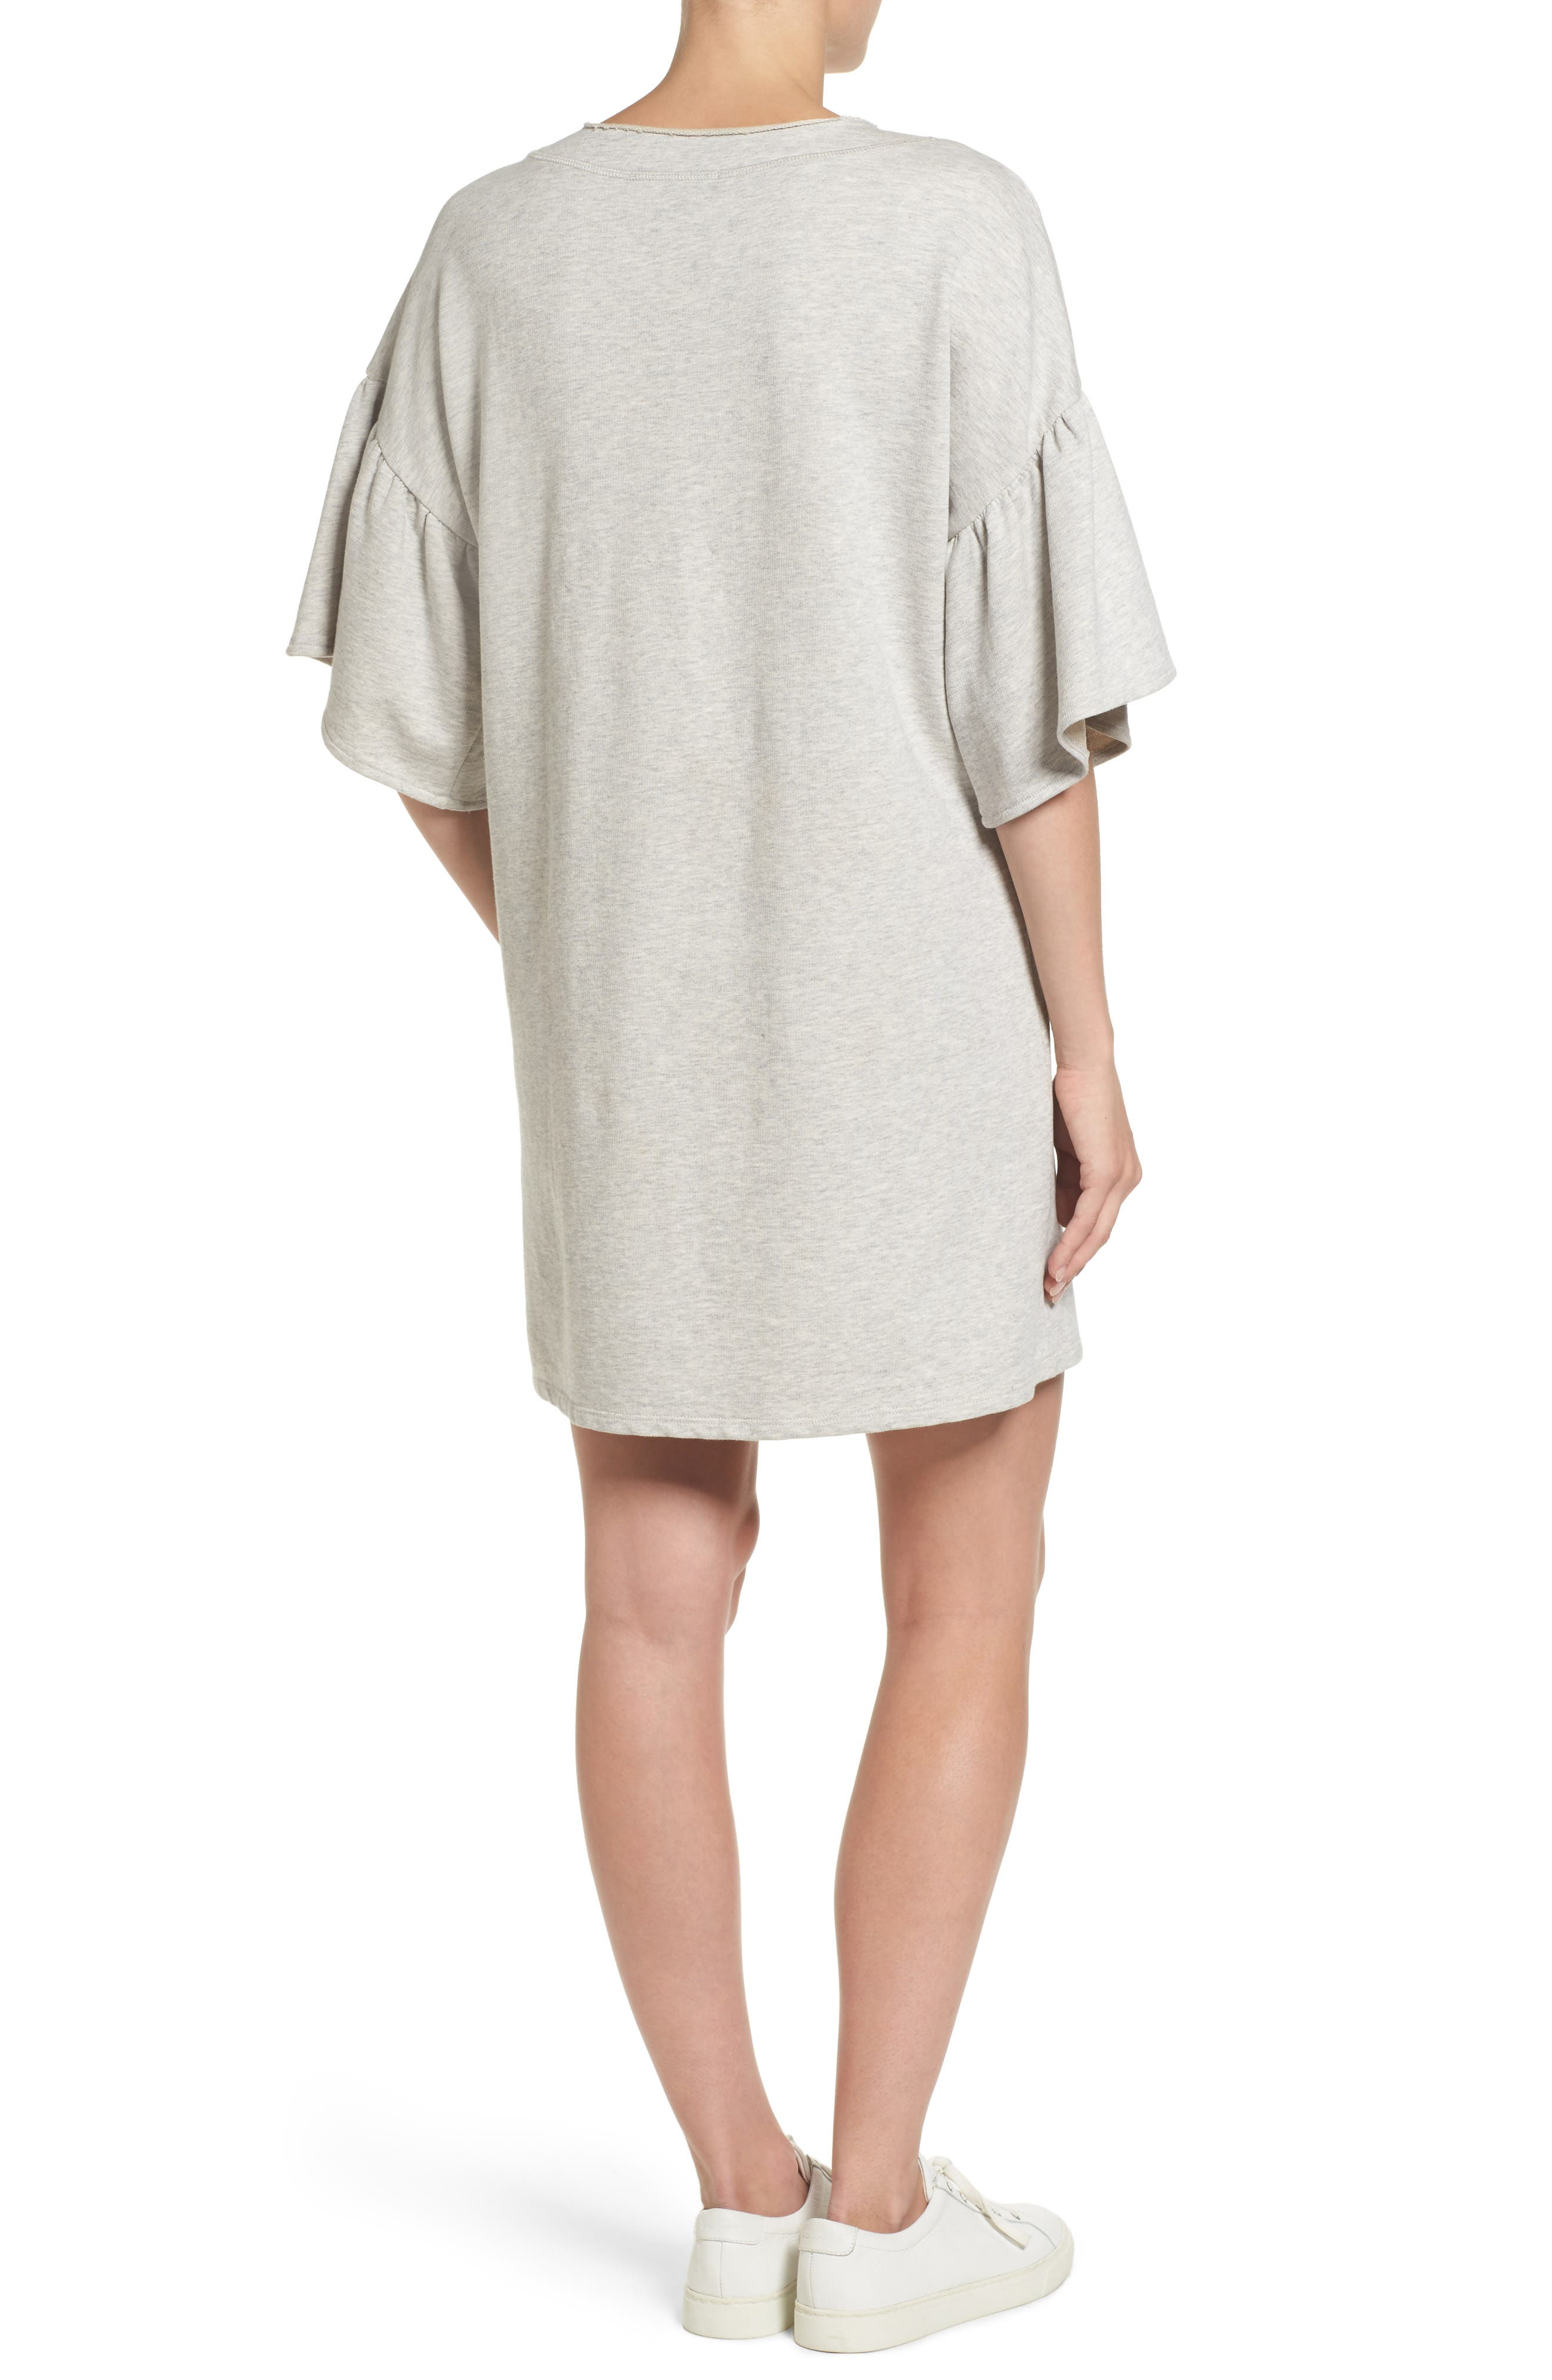 Mariska Fleece Knit Dress,                             Alternate thumbnail 2, color,                             050